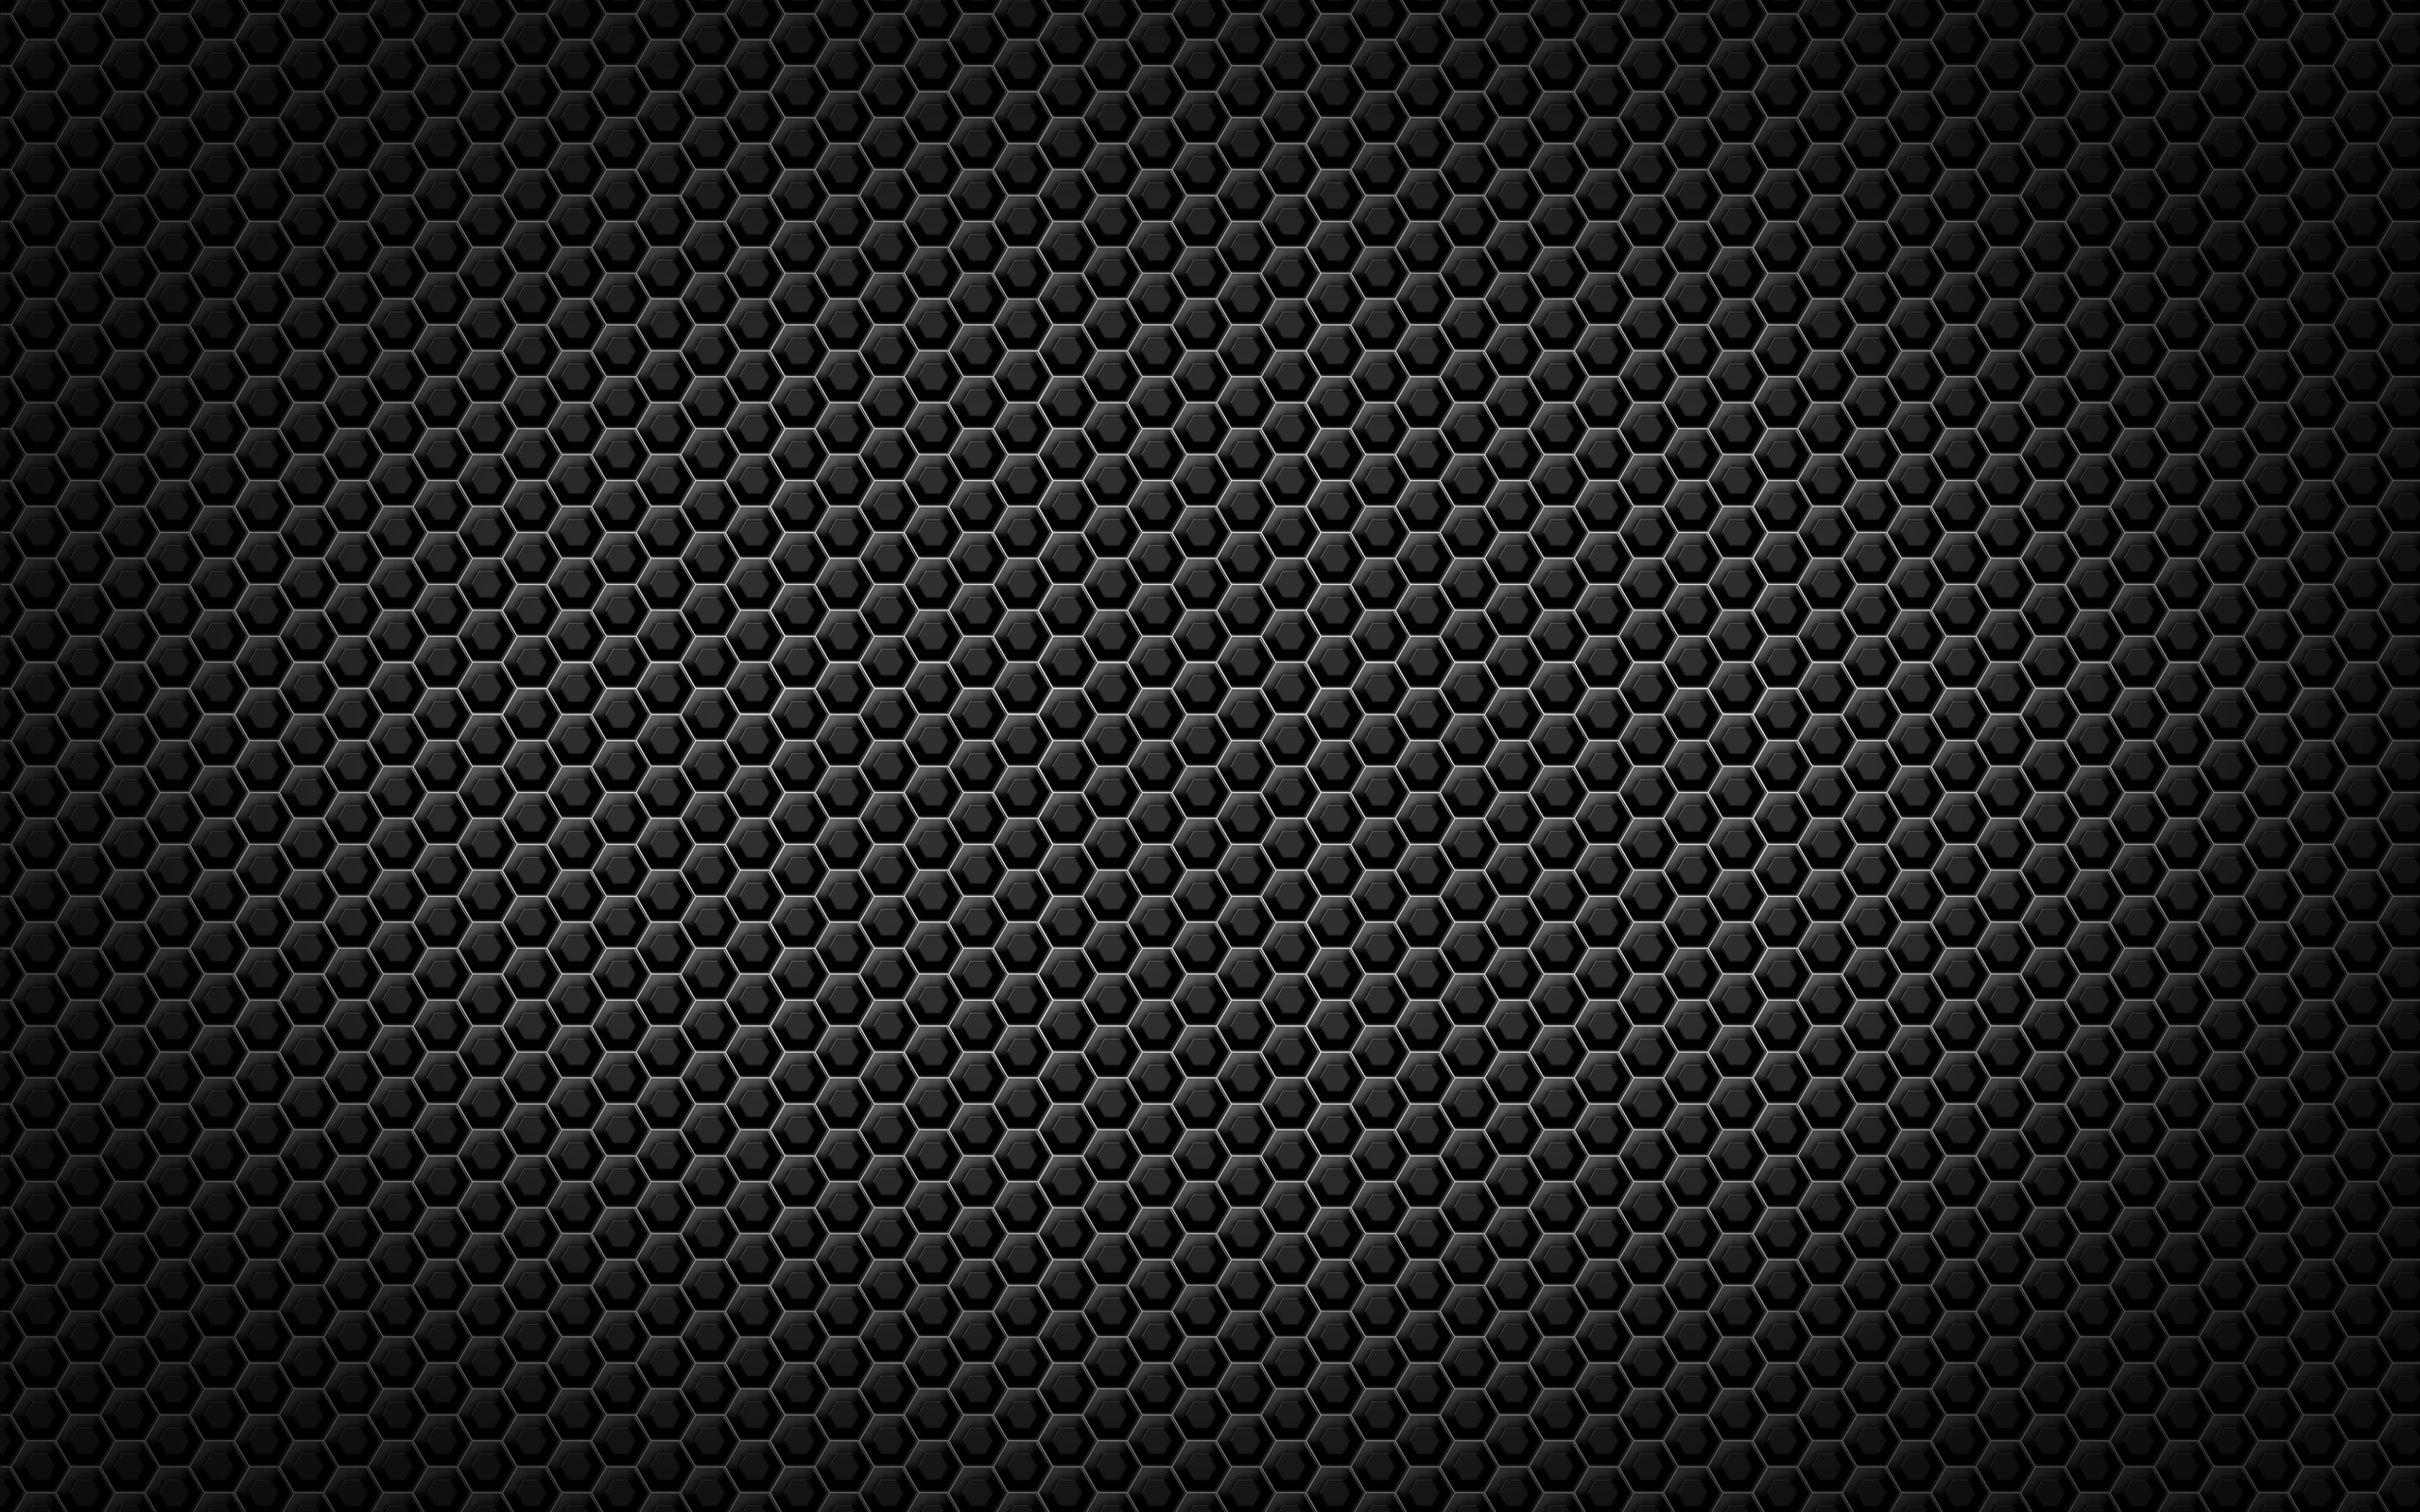 40 zwart hd wallpapers achtergronden wallpaper abyss - Black and white hd wallpapers black background ...